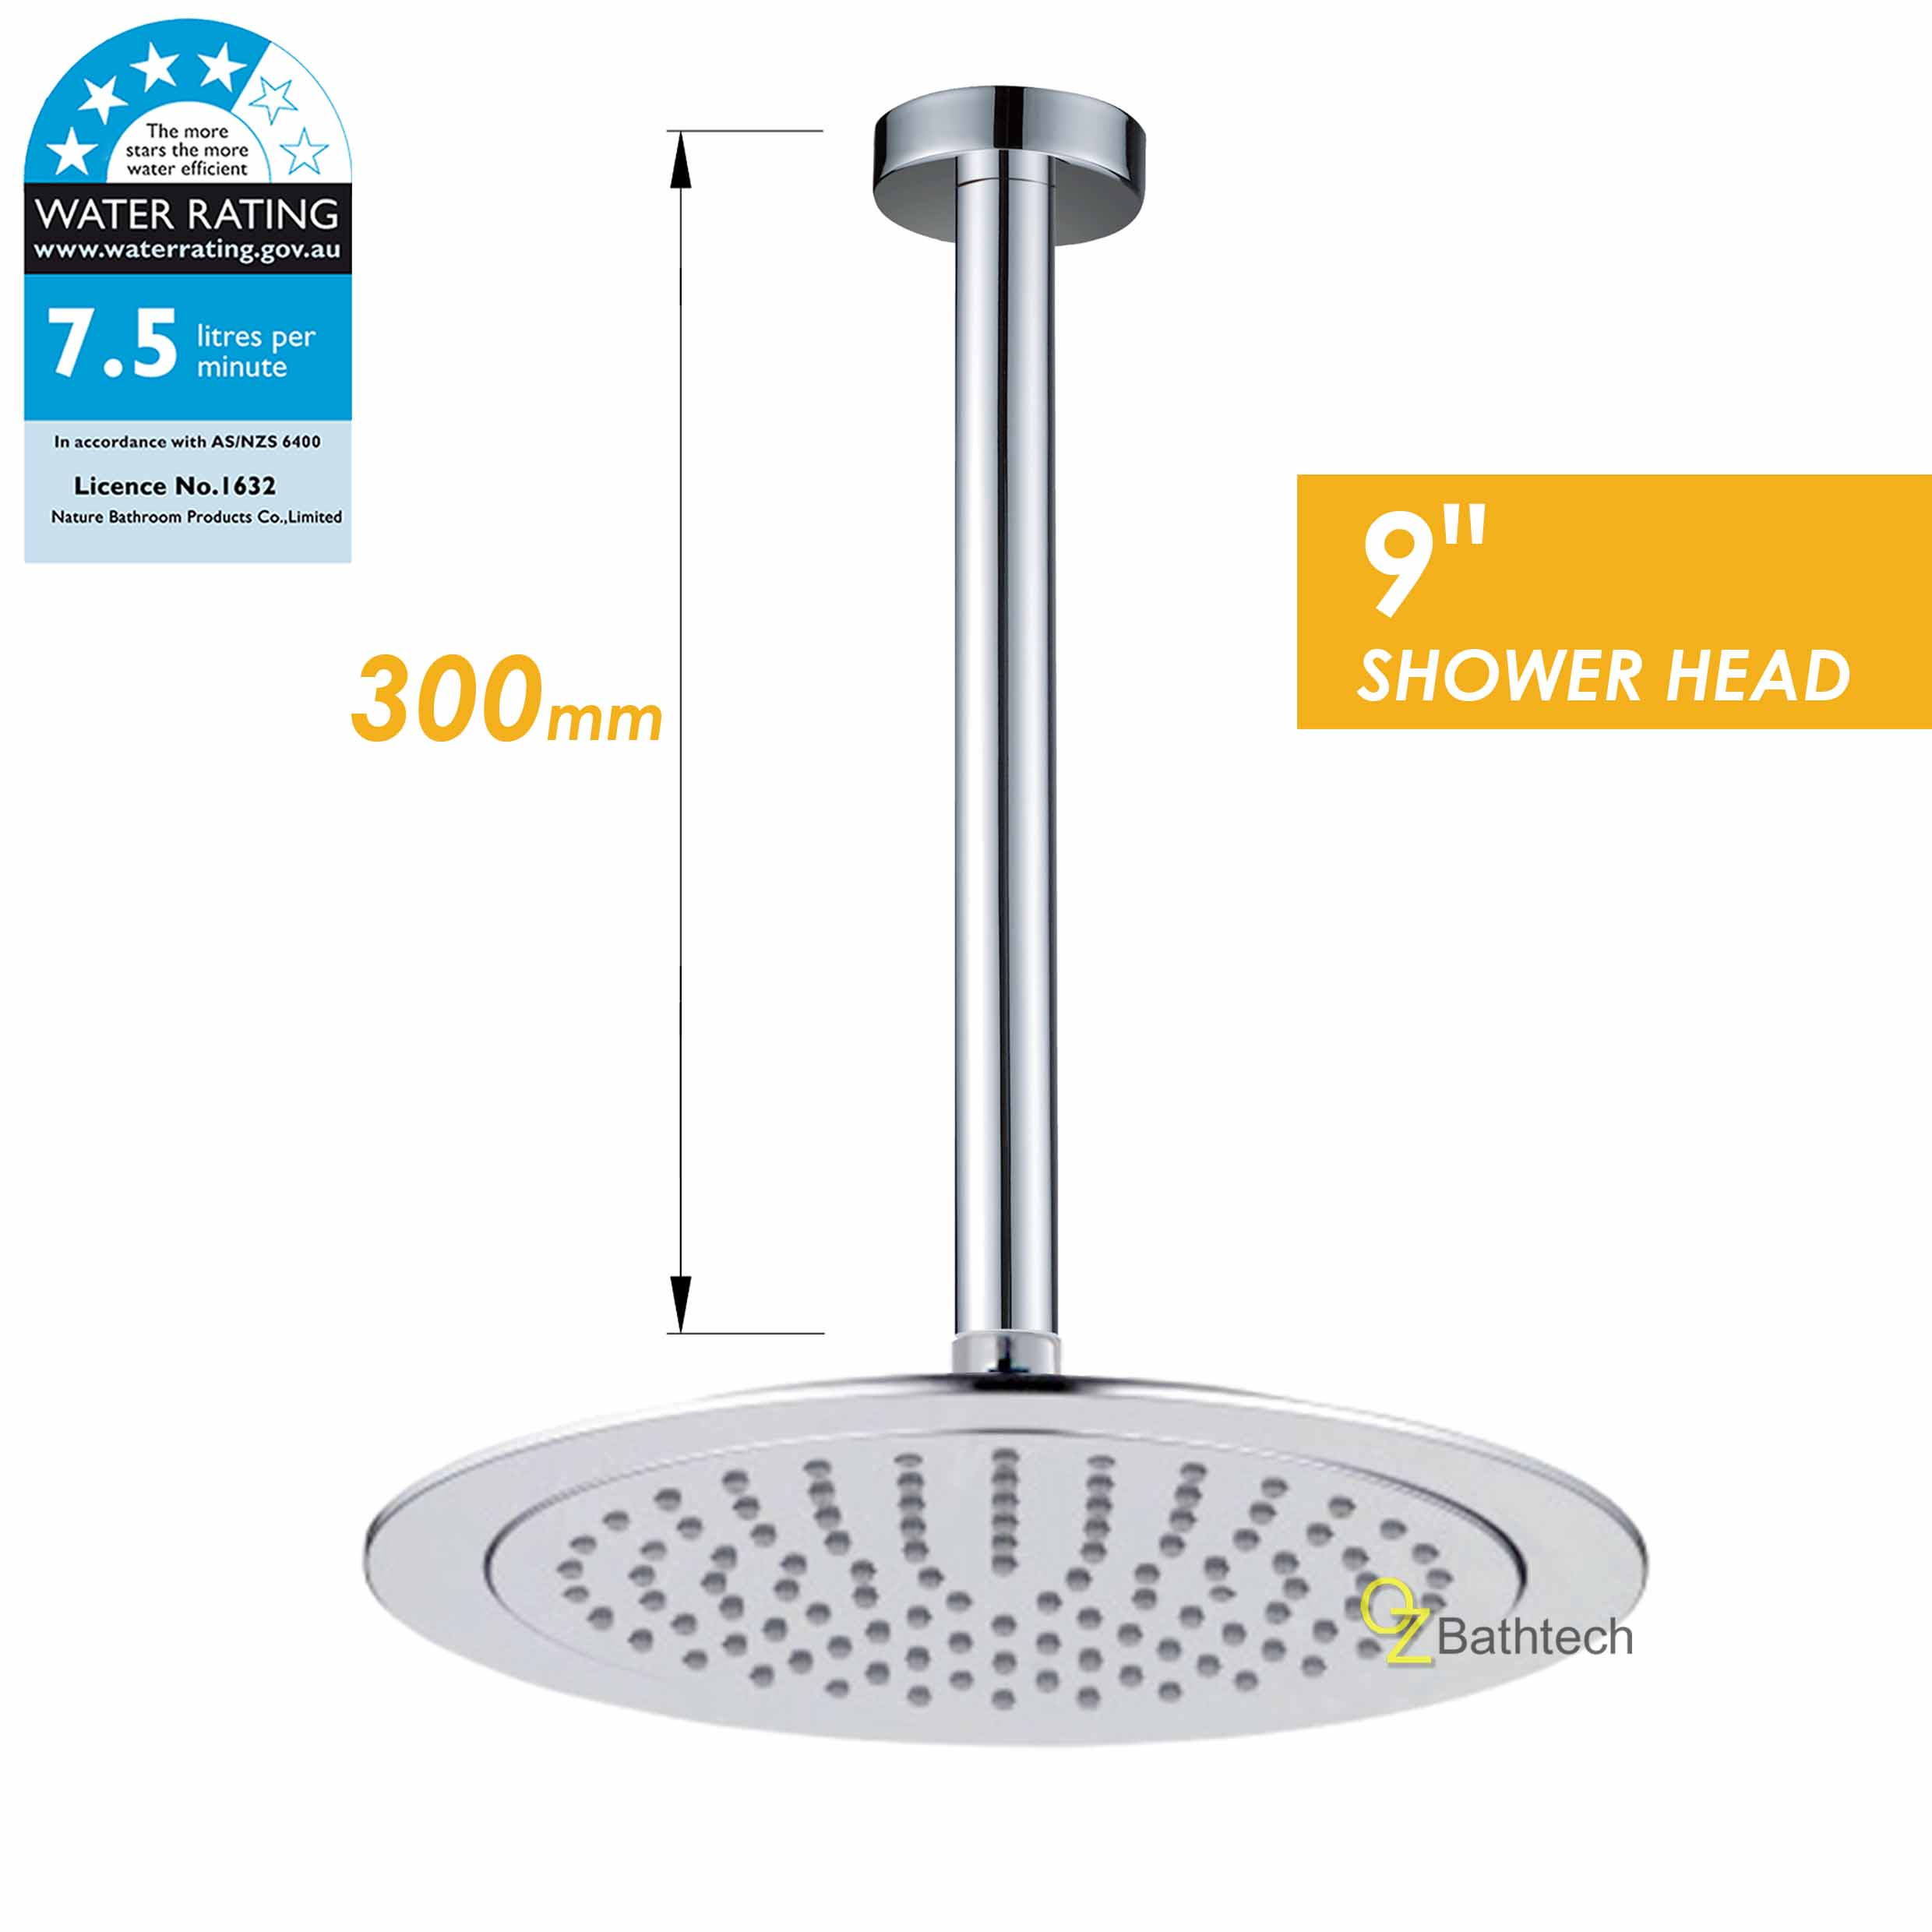 bathroom bath your heated contemporary cozy cabinet also towel under hand accessories head held add with rack waterfall shower lighting faucet plus and glass in tile floors built